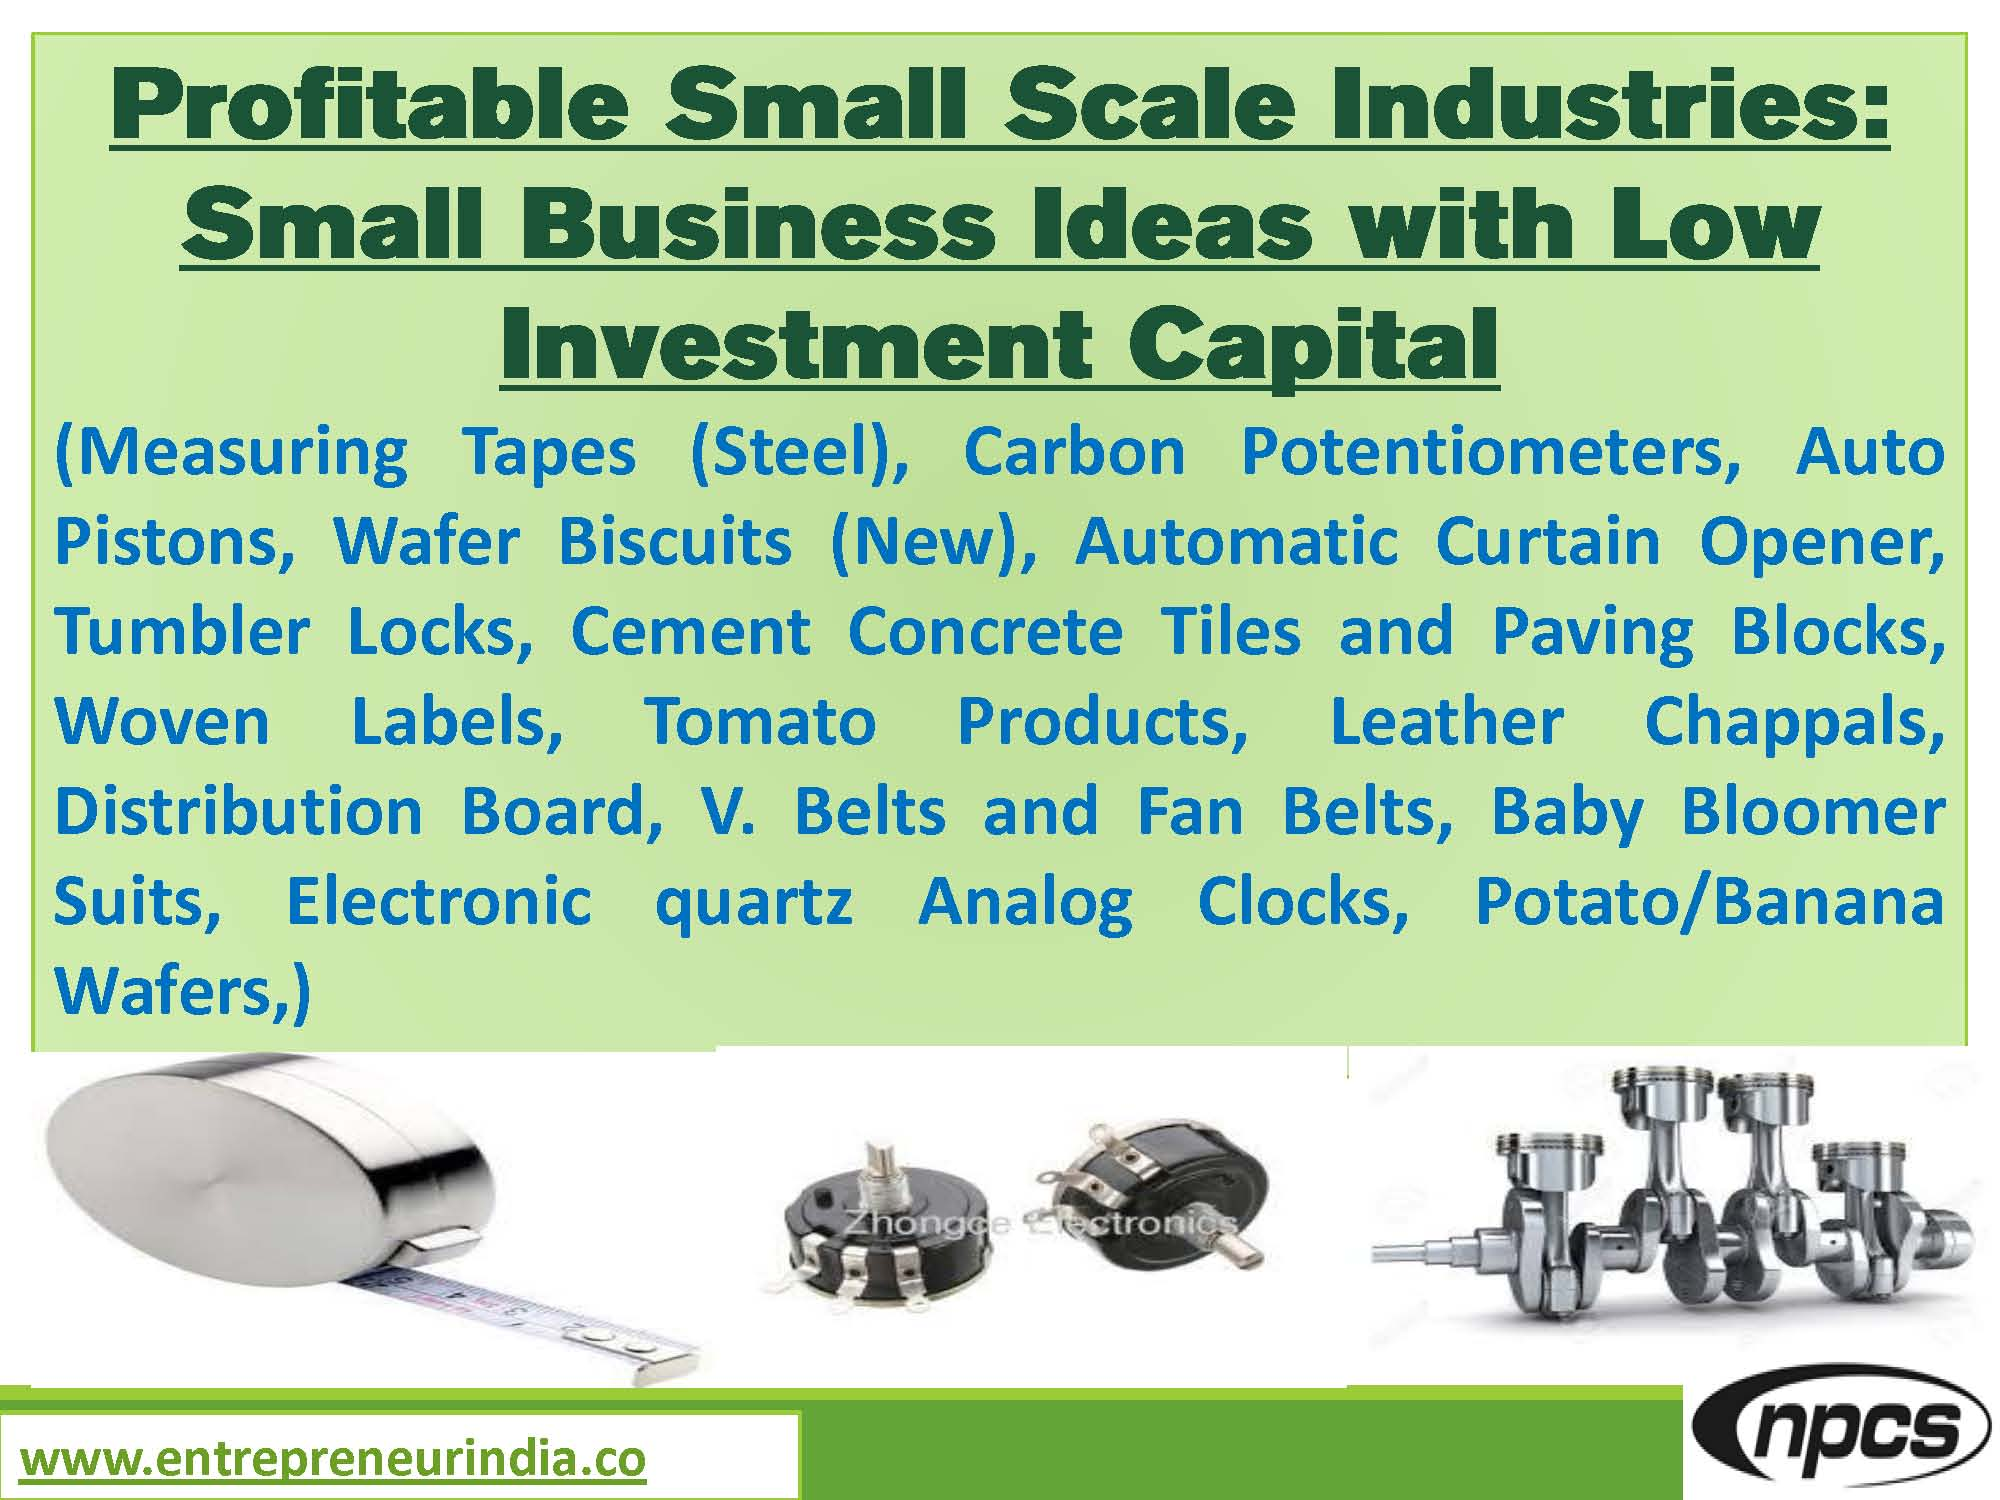 Profitable Small Scale Industries: Small Business Ideas with